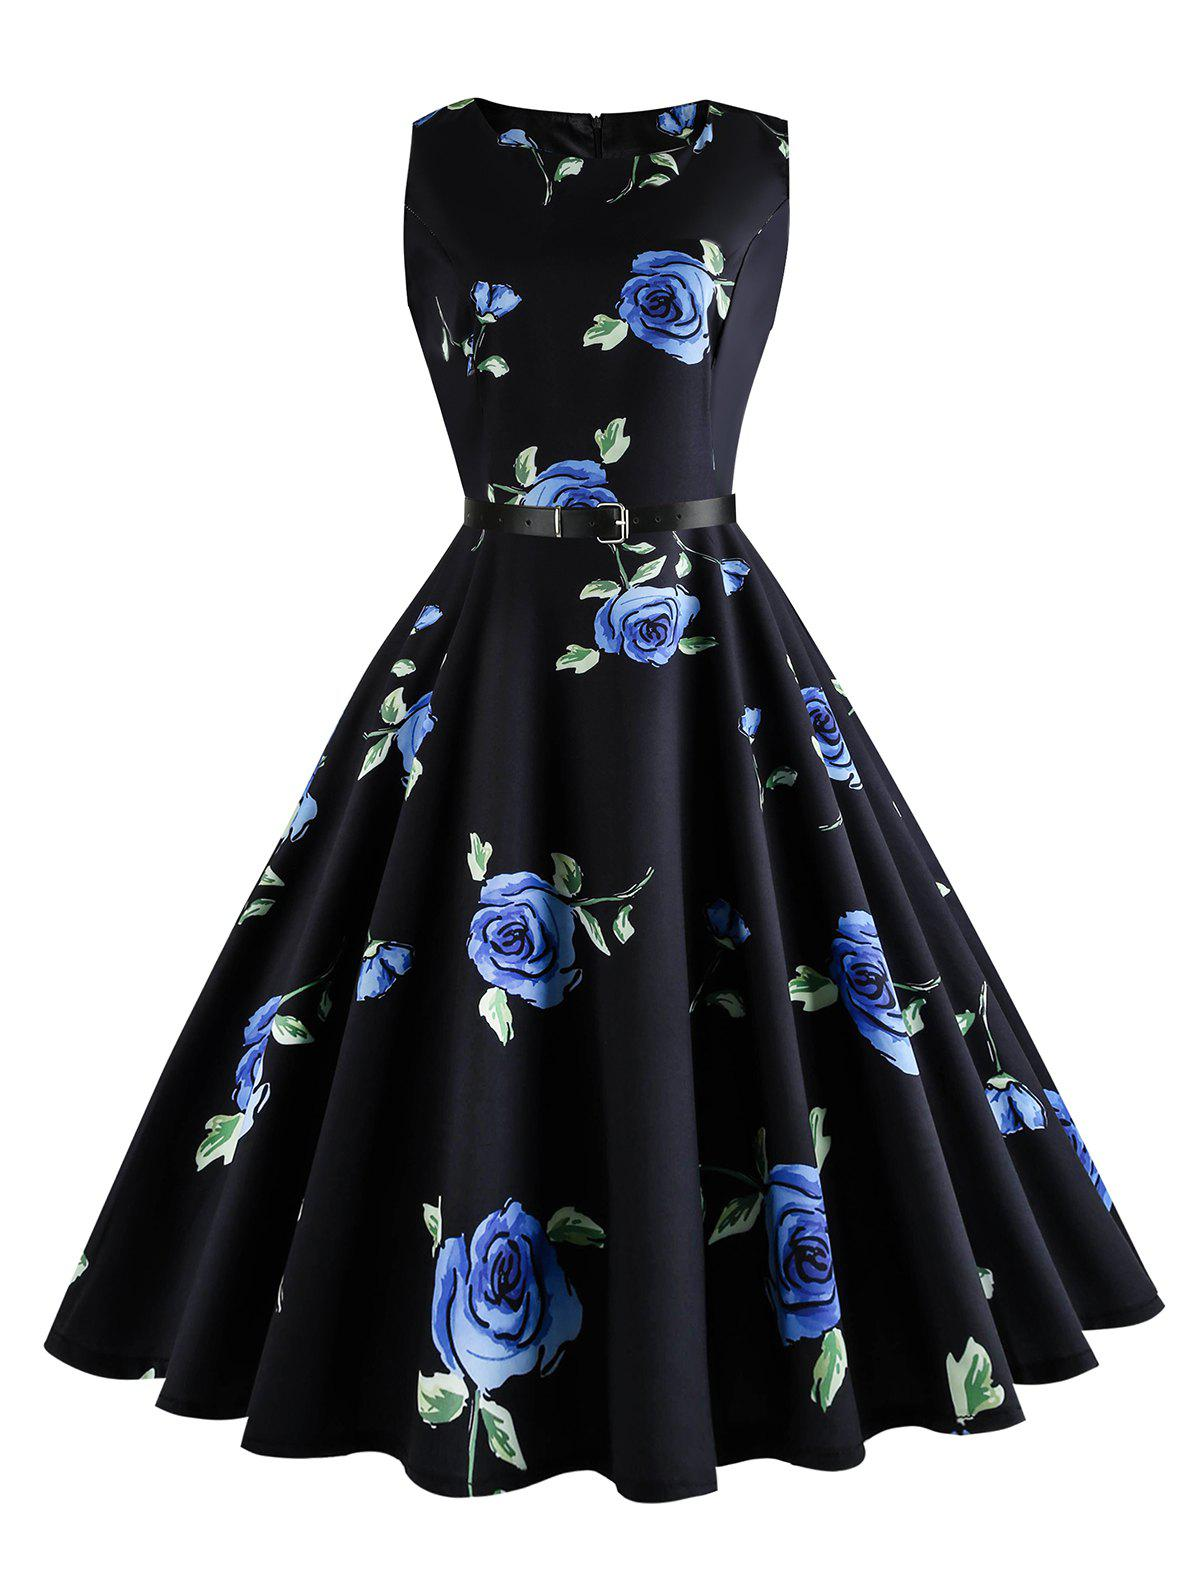 Plus Size Floral Print Retro DressWOMEN<br><br>Size: 5XL; Color: BLUE; Style: Vintage; Material: Cotton Blend,Polyester; Silhouette: Ball Gown; Dresses Length: Mid-Calf; Neckline: Round Collar; Sleeve Length: Sleeveless; Embellishment: Vintage; Pattern Type: Floral,Print; With Belt: No; Season: Spring,Summer; Weight: 0.3000kg; Package Contents: 1 x Dress;